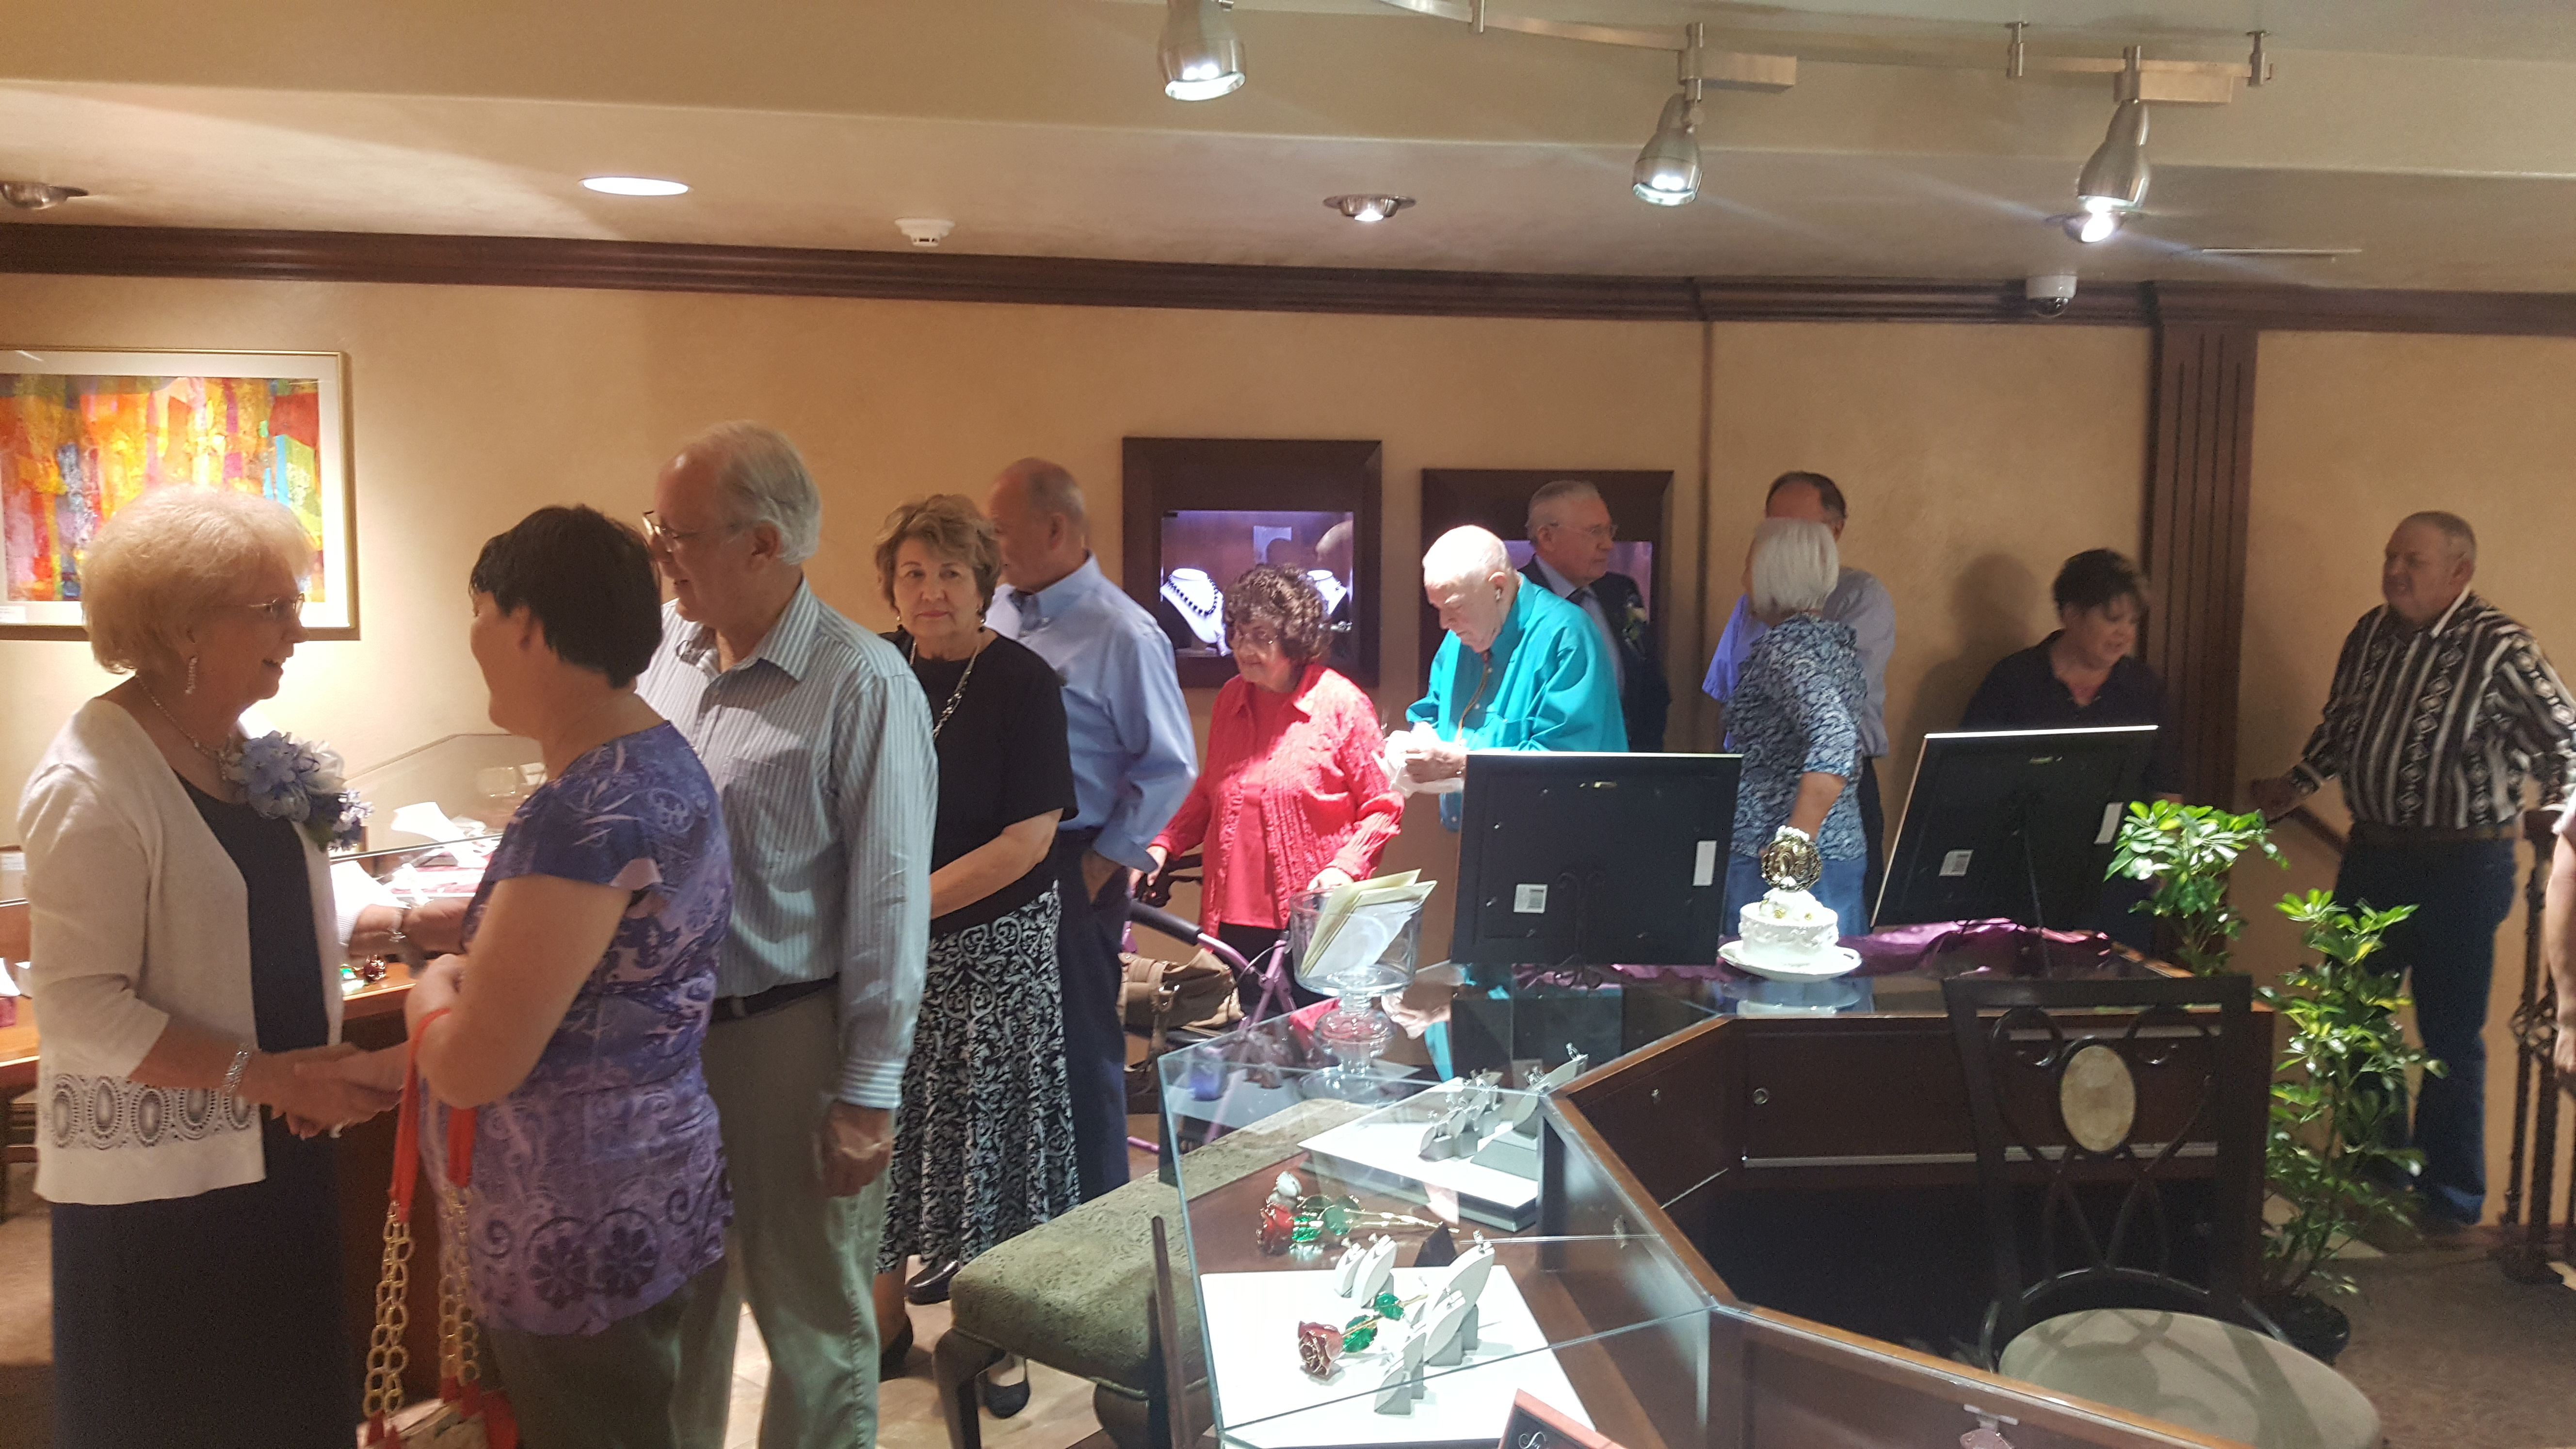 LaRee and Heber Jones greet guests at their 60th wedding anniversary, Forever Young Fine Jewelers, St. George, Utah, Oct. 12, 2016 | Photo courtesy of Megan Young, St. George News